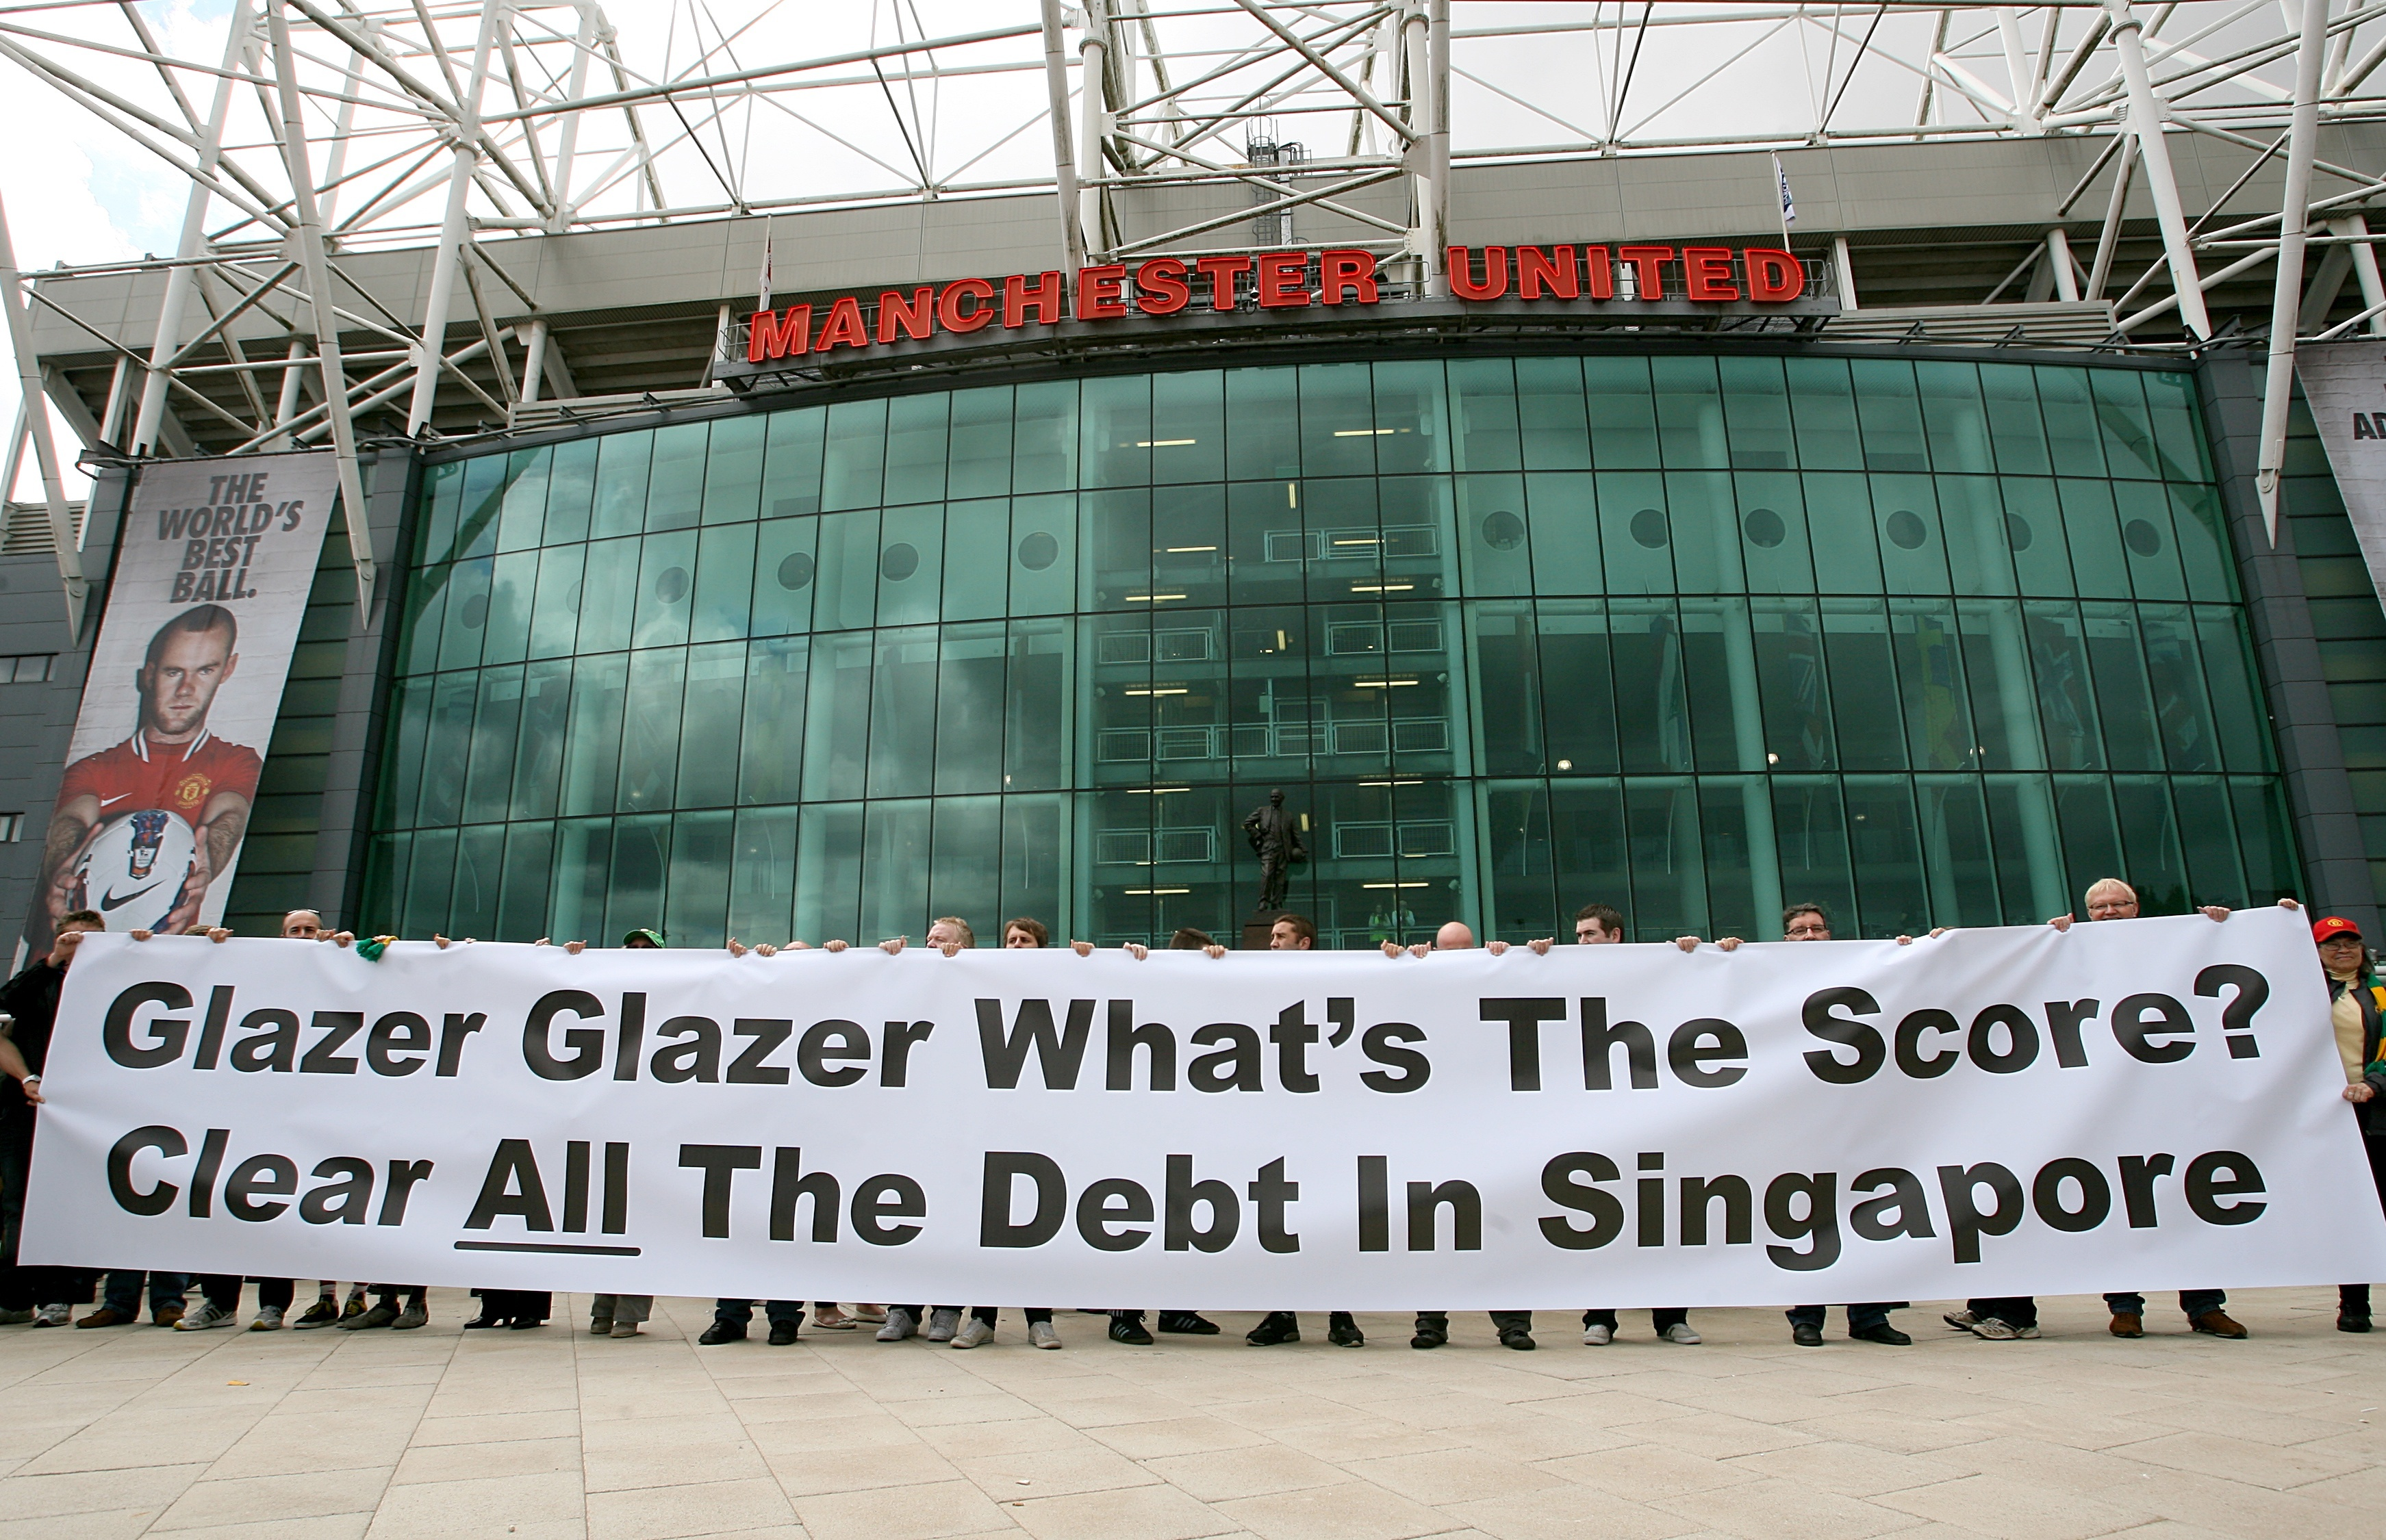 Like it or not, football has to be more aligned to finance